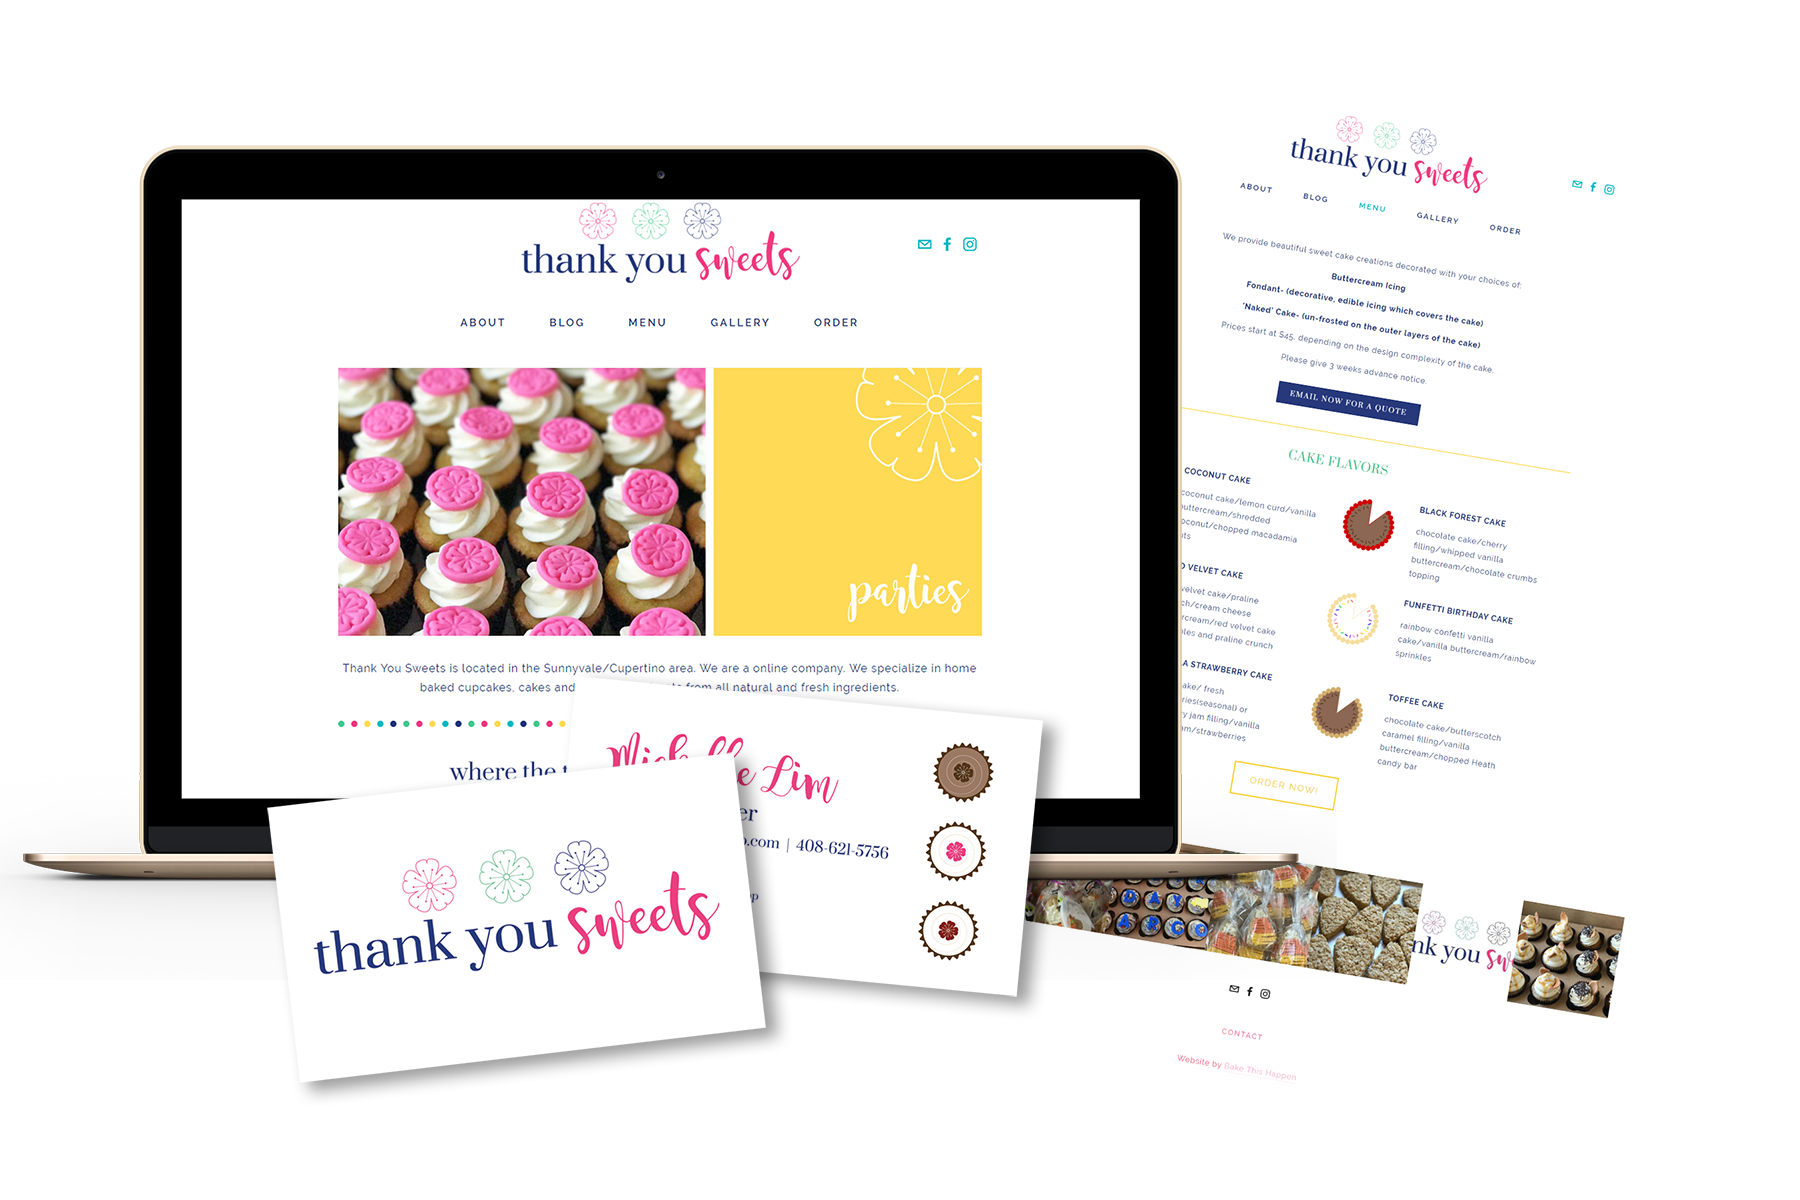 """You did a wonderful job and were so patient…I am very happy with my website and thankful for all your help!"" - - MICHELLE, THANK YOU SWEETS"